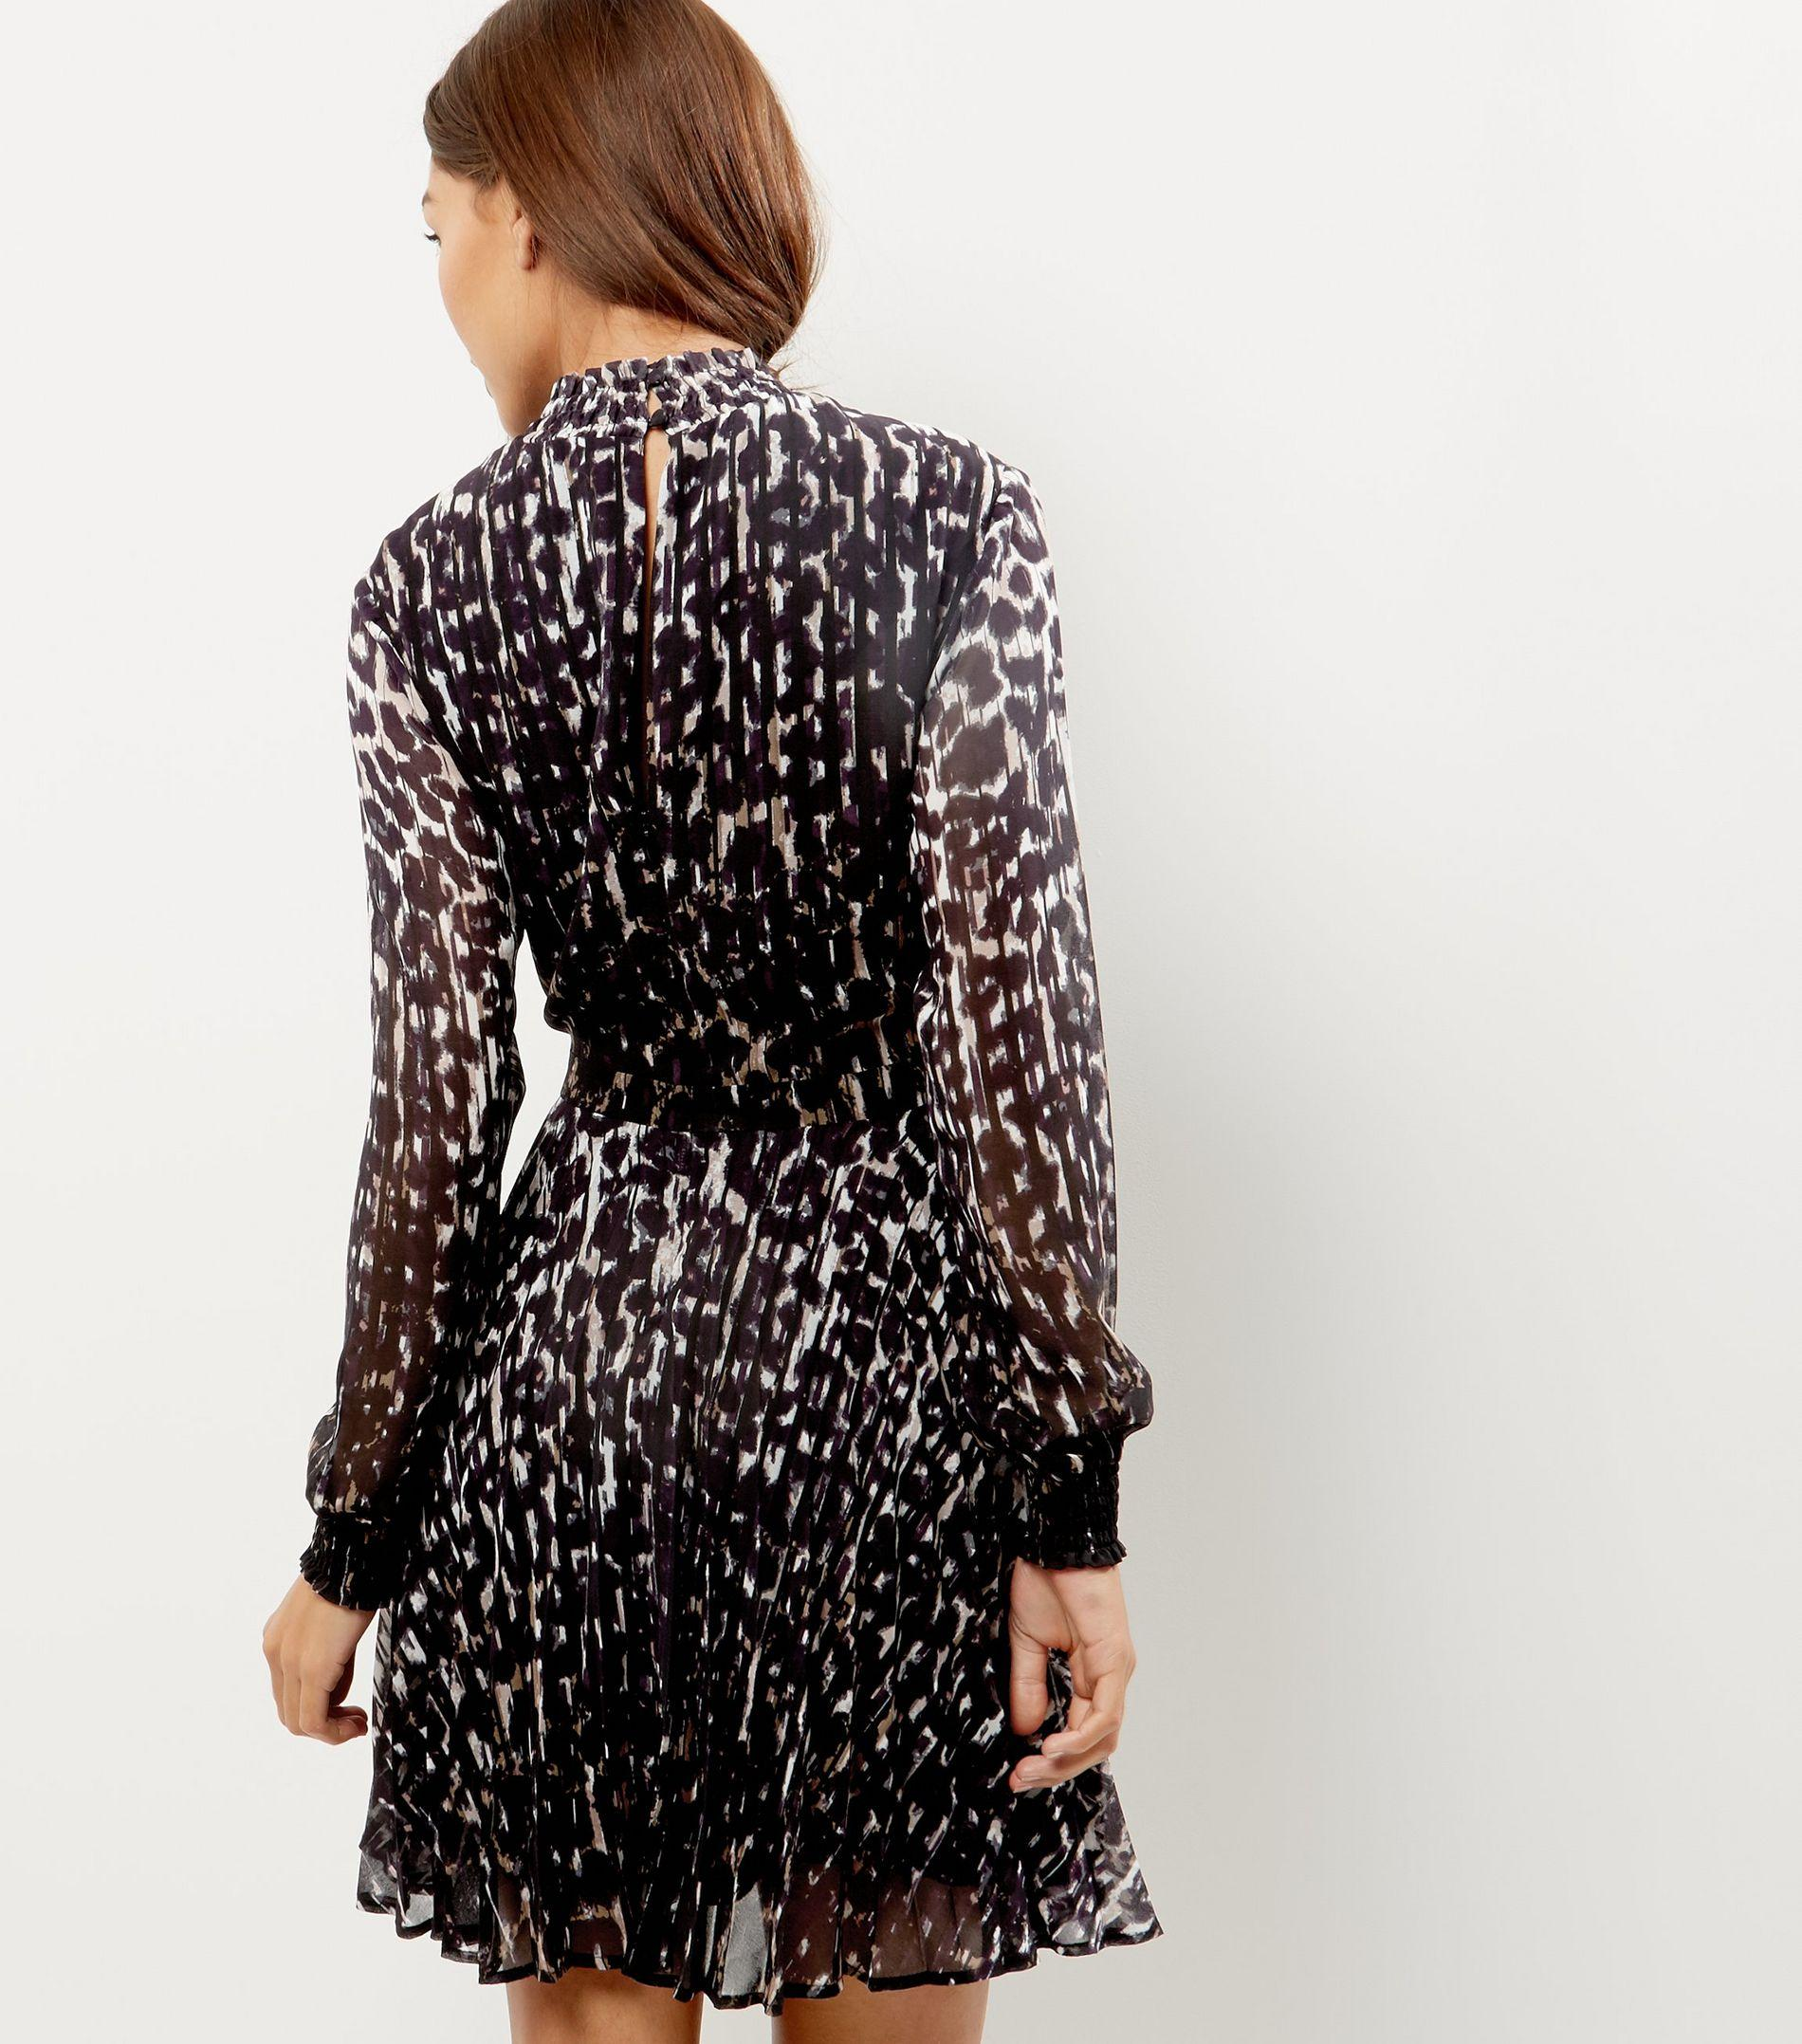 New look leopard print dress - New look, Leopard print, light weight, thin, dress, size 12 hardly worn.